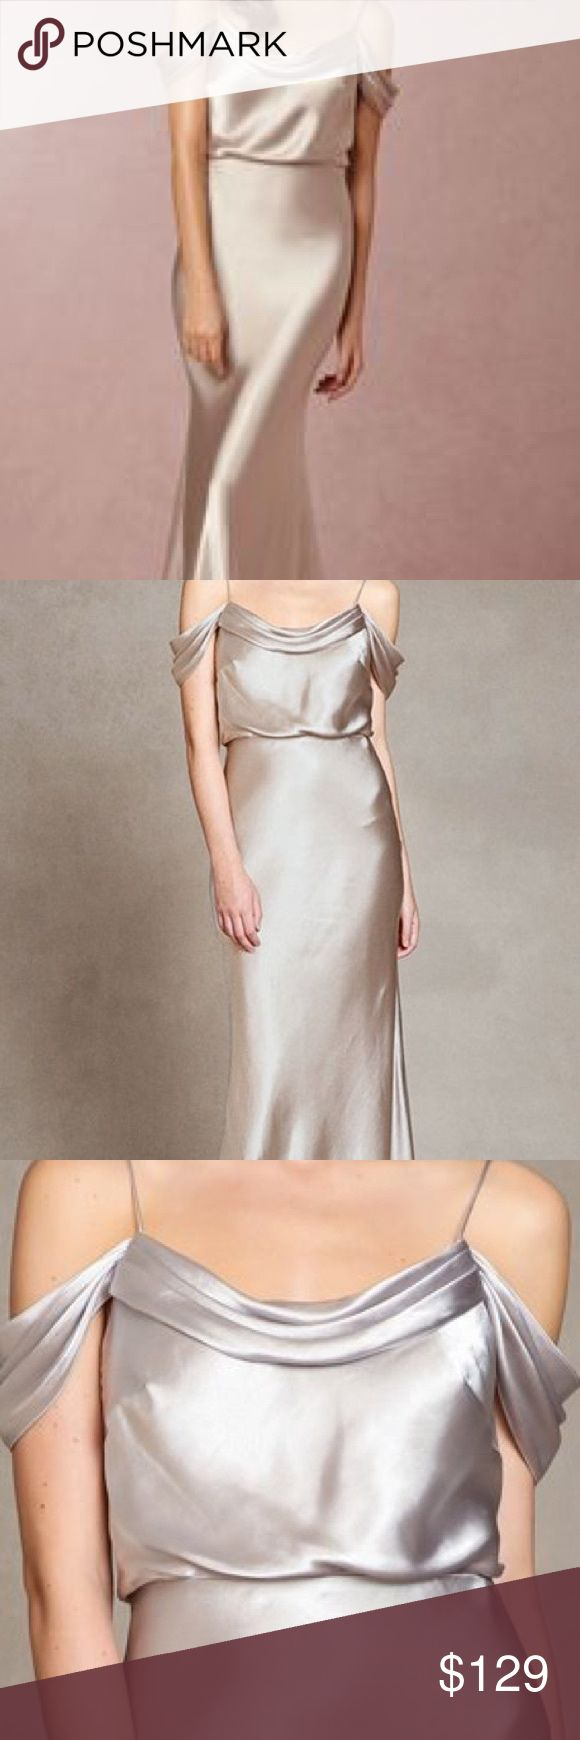 "Jenny yoo Sabine crepe de chine bridesmaid gown 6 A beautifully draped neckline and graceful dropped shoulders—that can also be styled as cap sleeves—enhance the romantic appeal of this lovely crepe dress. A nipped-in natural waist above the curve-skimming flared skirt creates a universally flattering silhouette. 61"" length  Hidden back-zip closure. Pleated cowl neckline. Flared, floor-sweeping skirt. Fully lined. 100% polyester. Jenny Yoo Dresses Wedding"